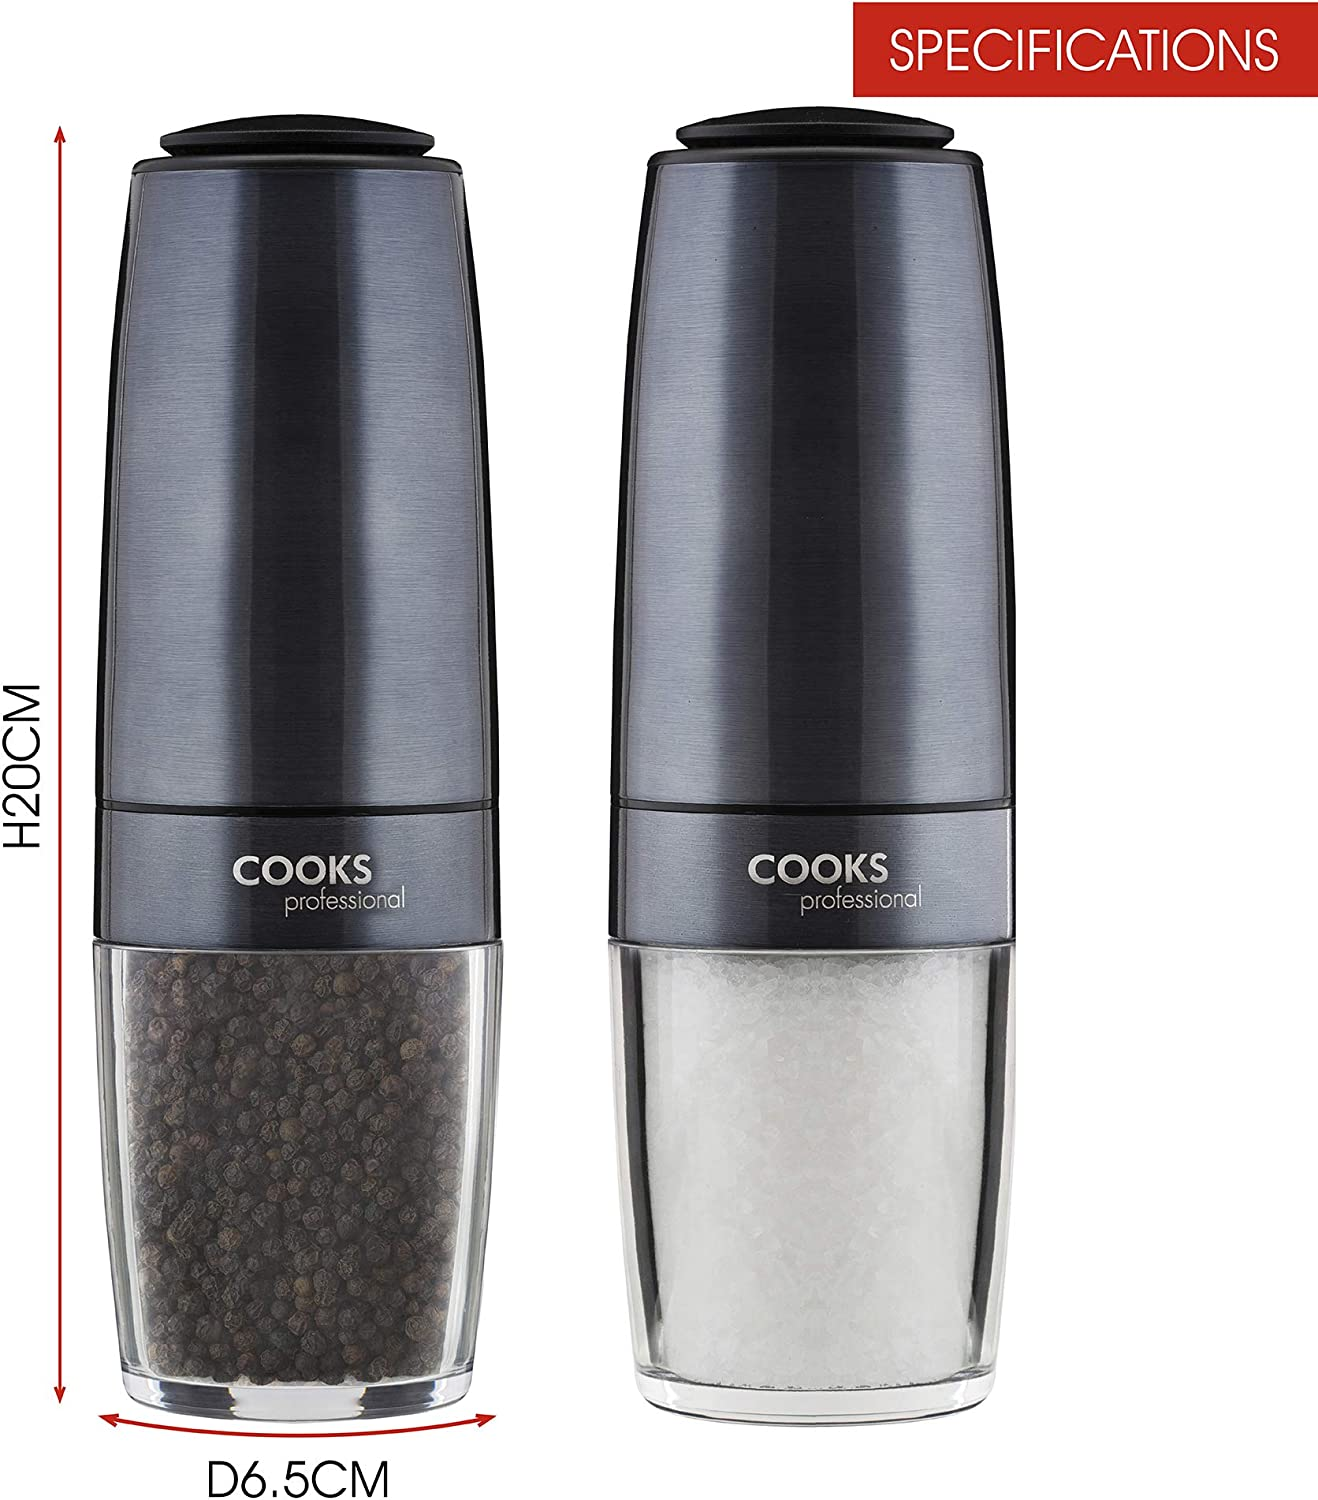 NEUF Cooks Professional Electric Salt//Pepper Mill Grinder 1pc Graphite